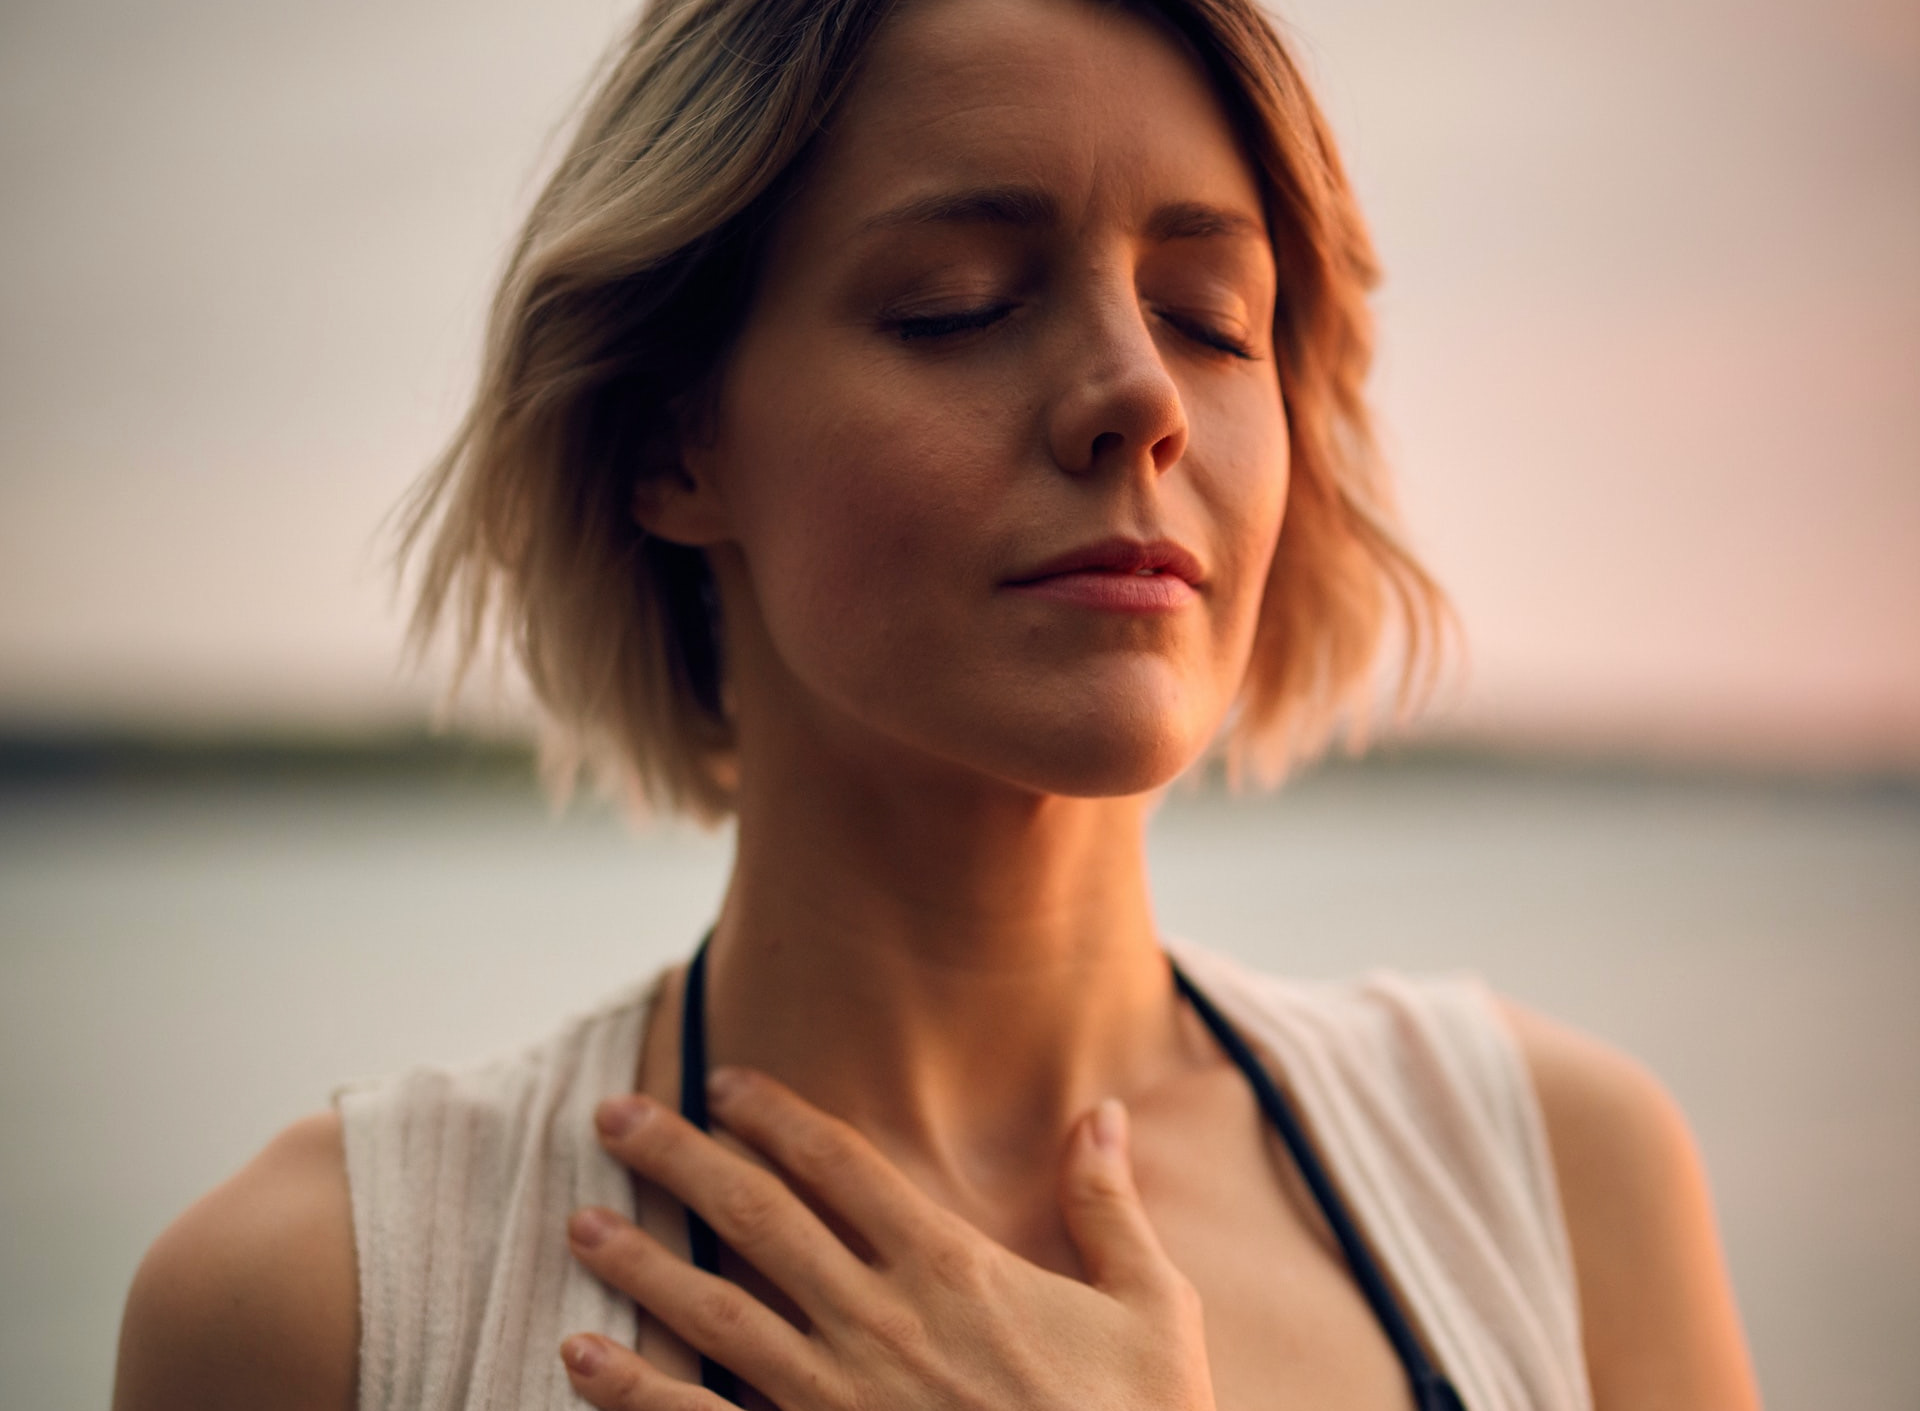 Person In Setting Sunlight, Eyes Closed, Hand On Chest